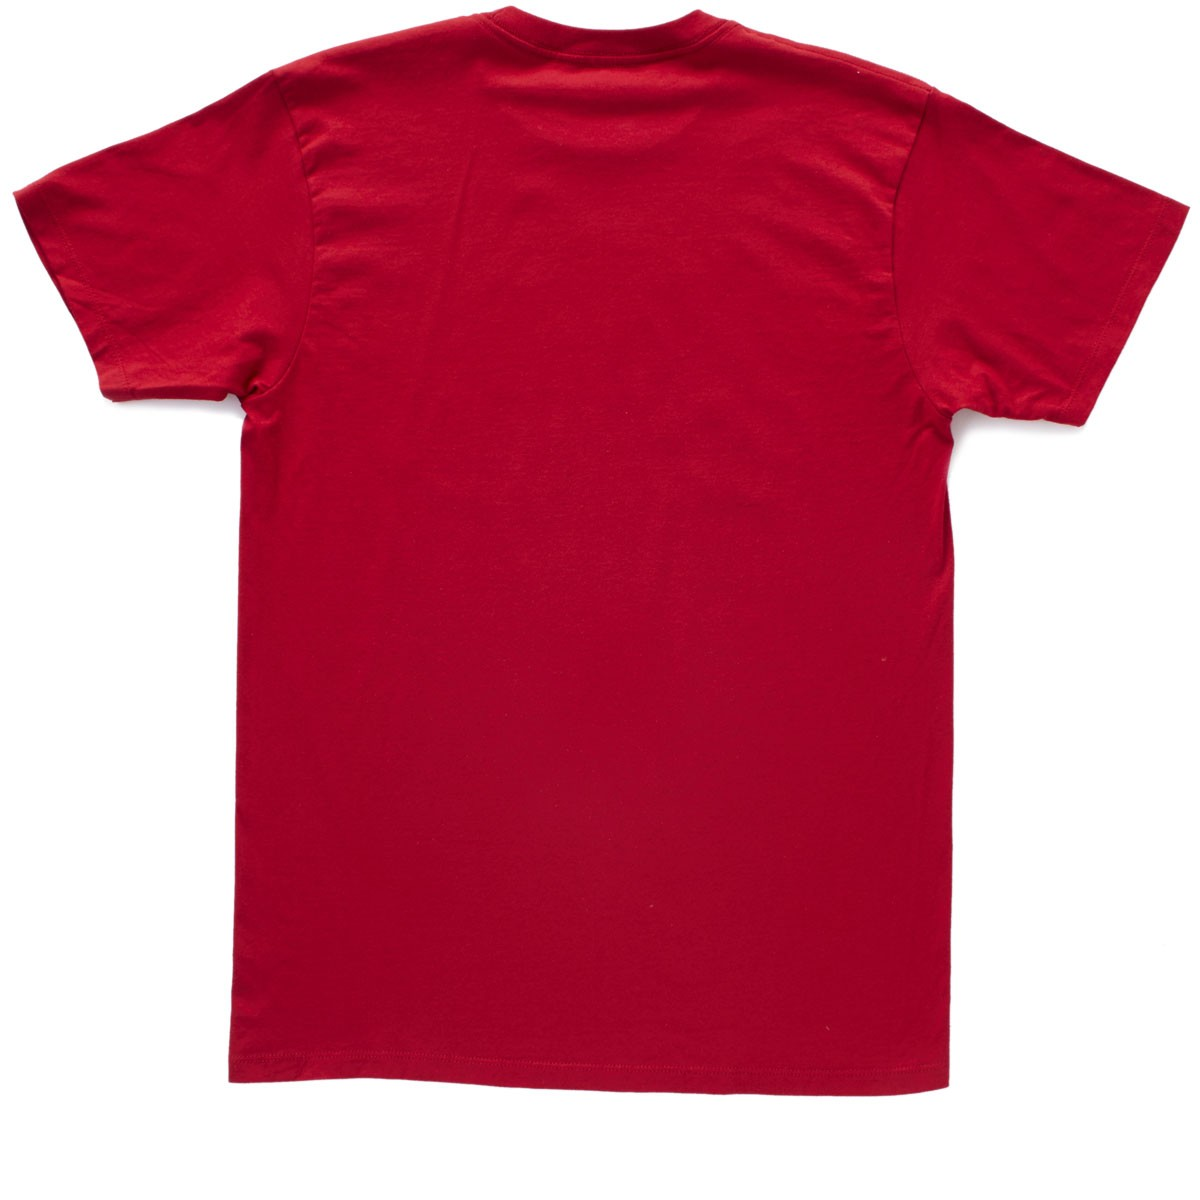 Supra above t shirt cardinal for Cardinal color t shirts